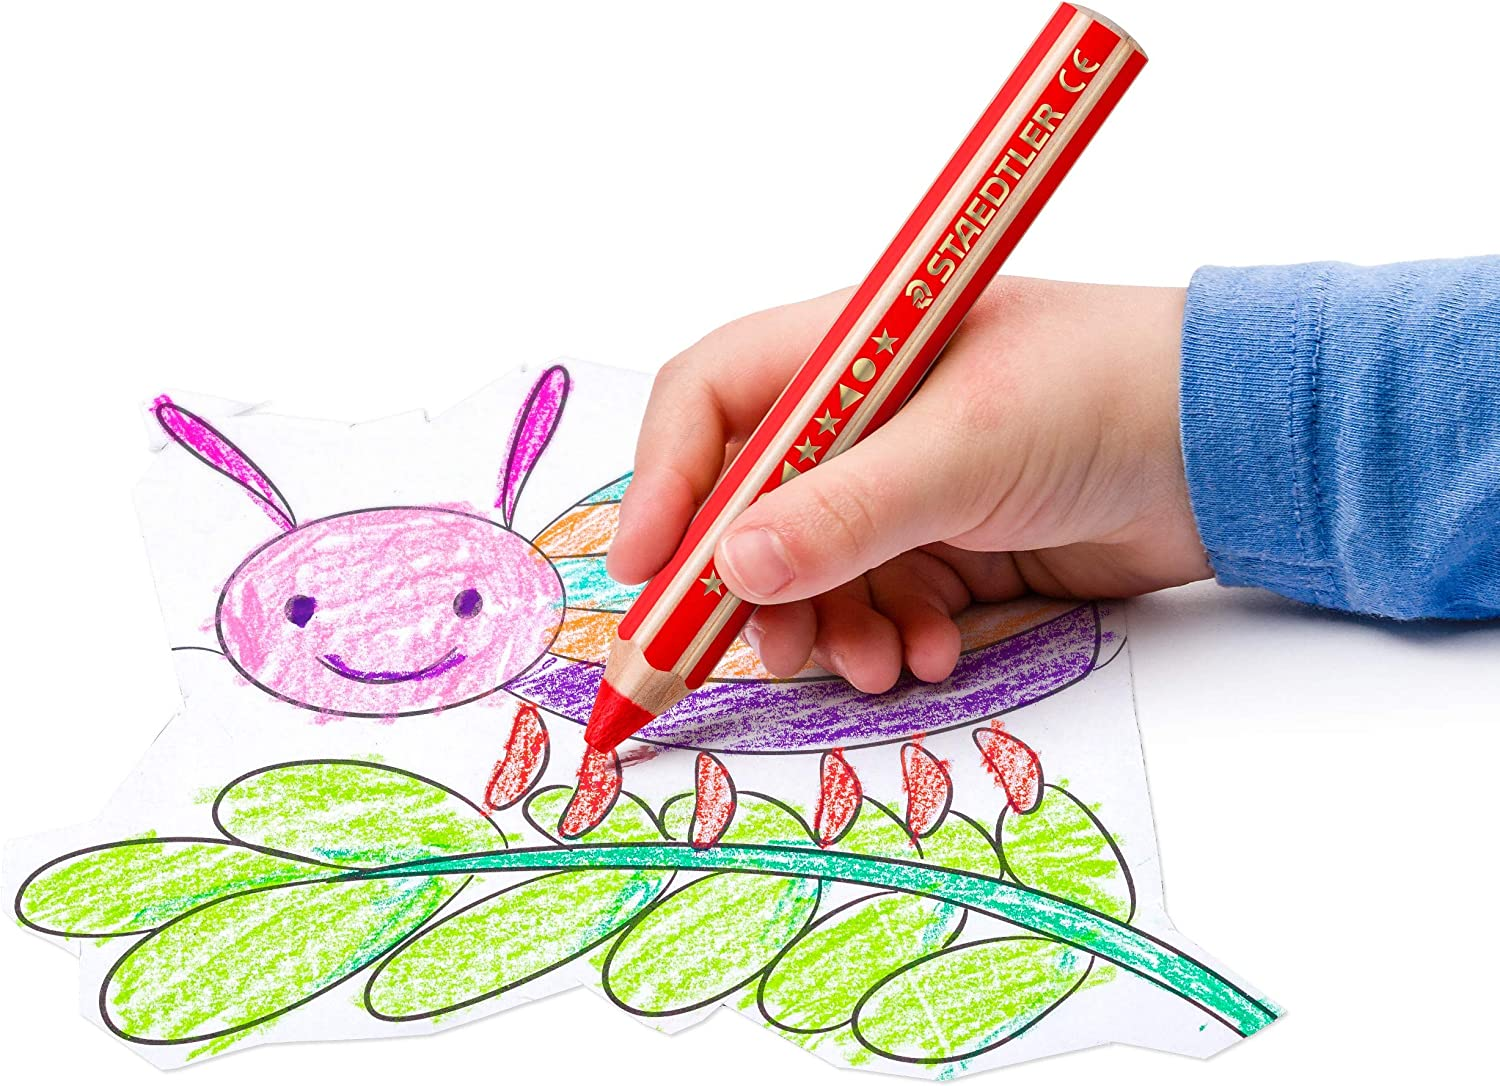 Staedtler 3 in 1 Buddy Colouring Pencil Colouring Wax Crayons Watercolour Pencil Extra Shatterproof Perfect for Children Many Surfaces Claspack with 36 Pens 140 C36